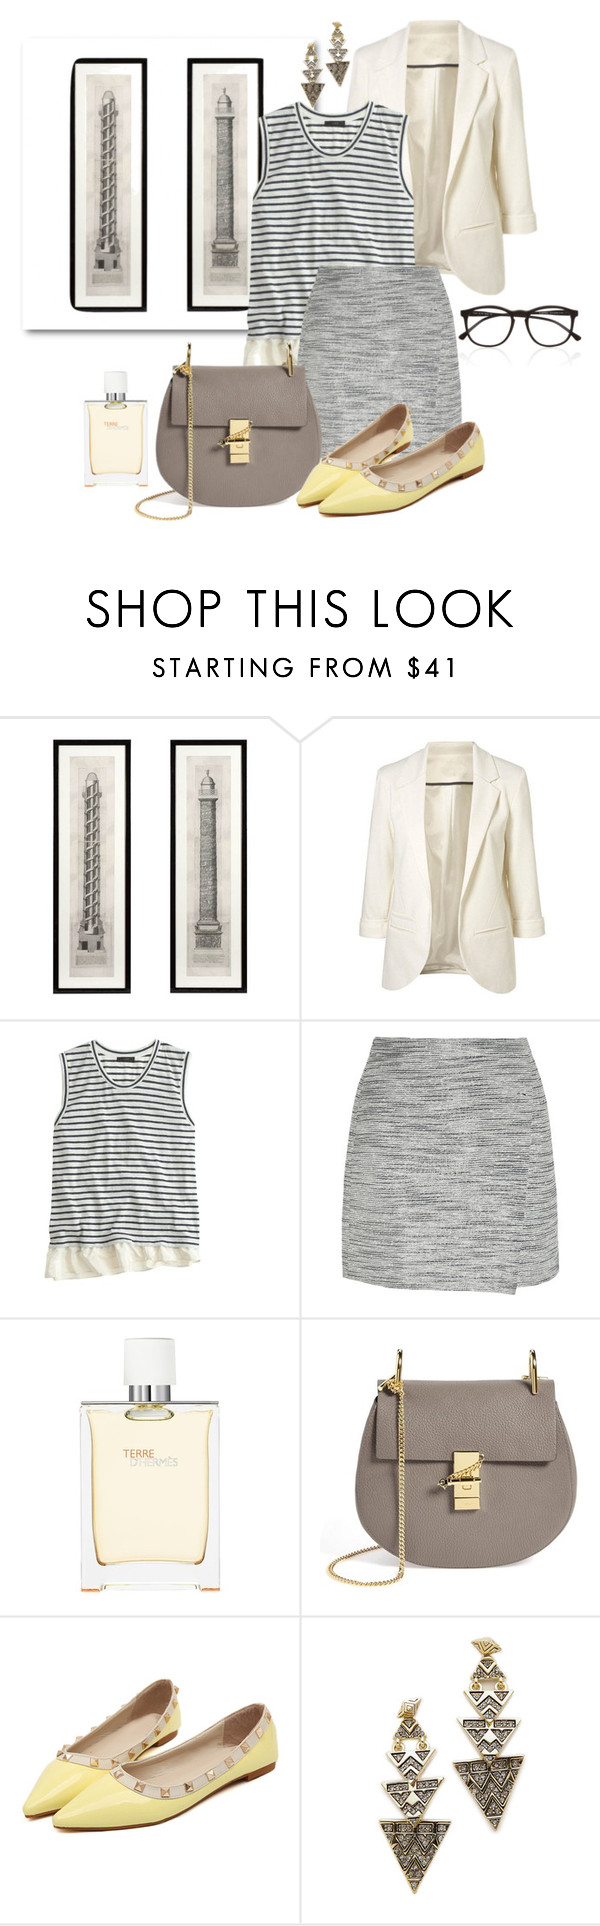 Love Grey by mstela on Polyvore featuring moda, J.Crew, Chloé, House of Harlow 1960, Illesteva and Hermès